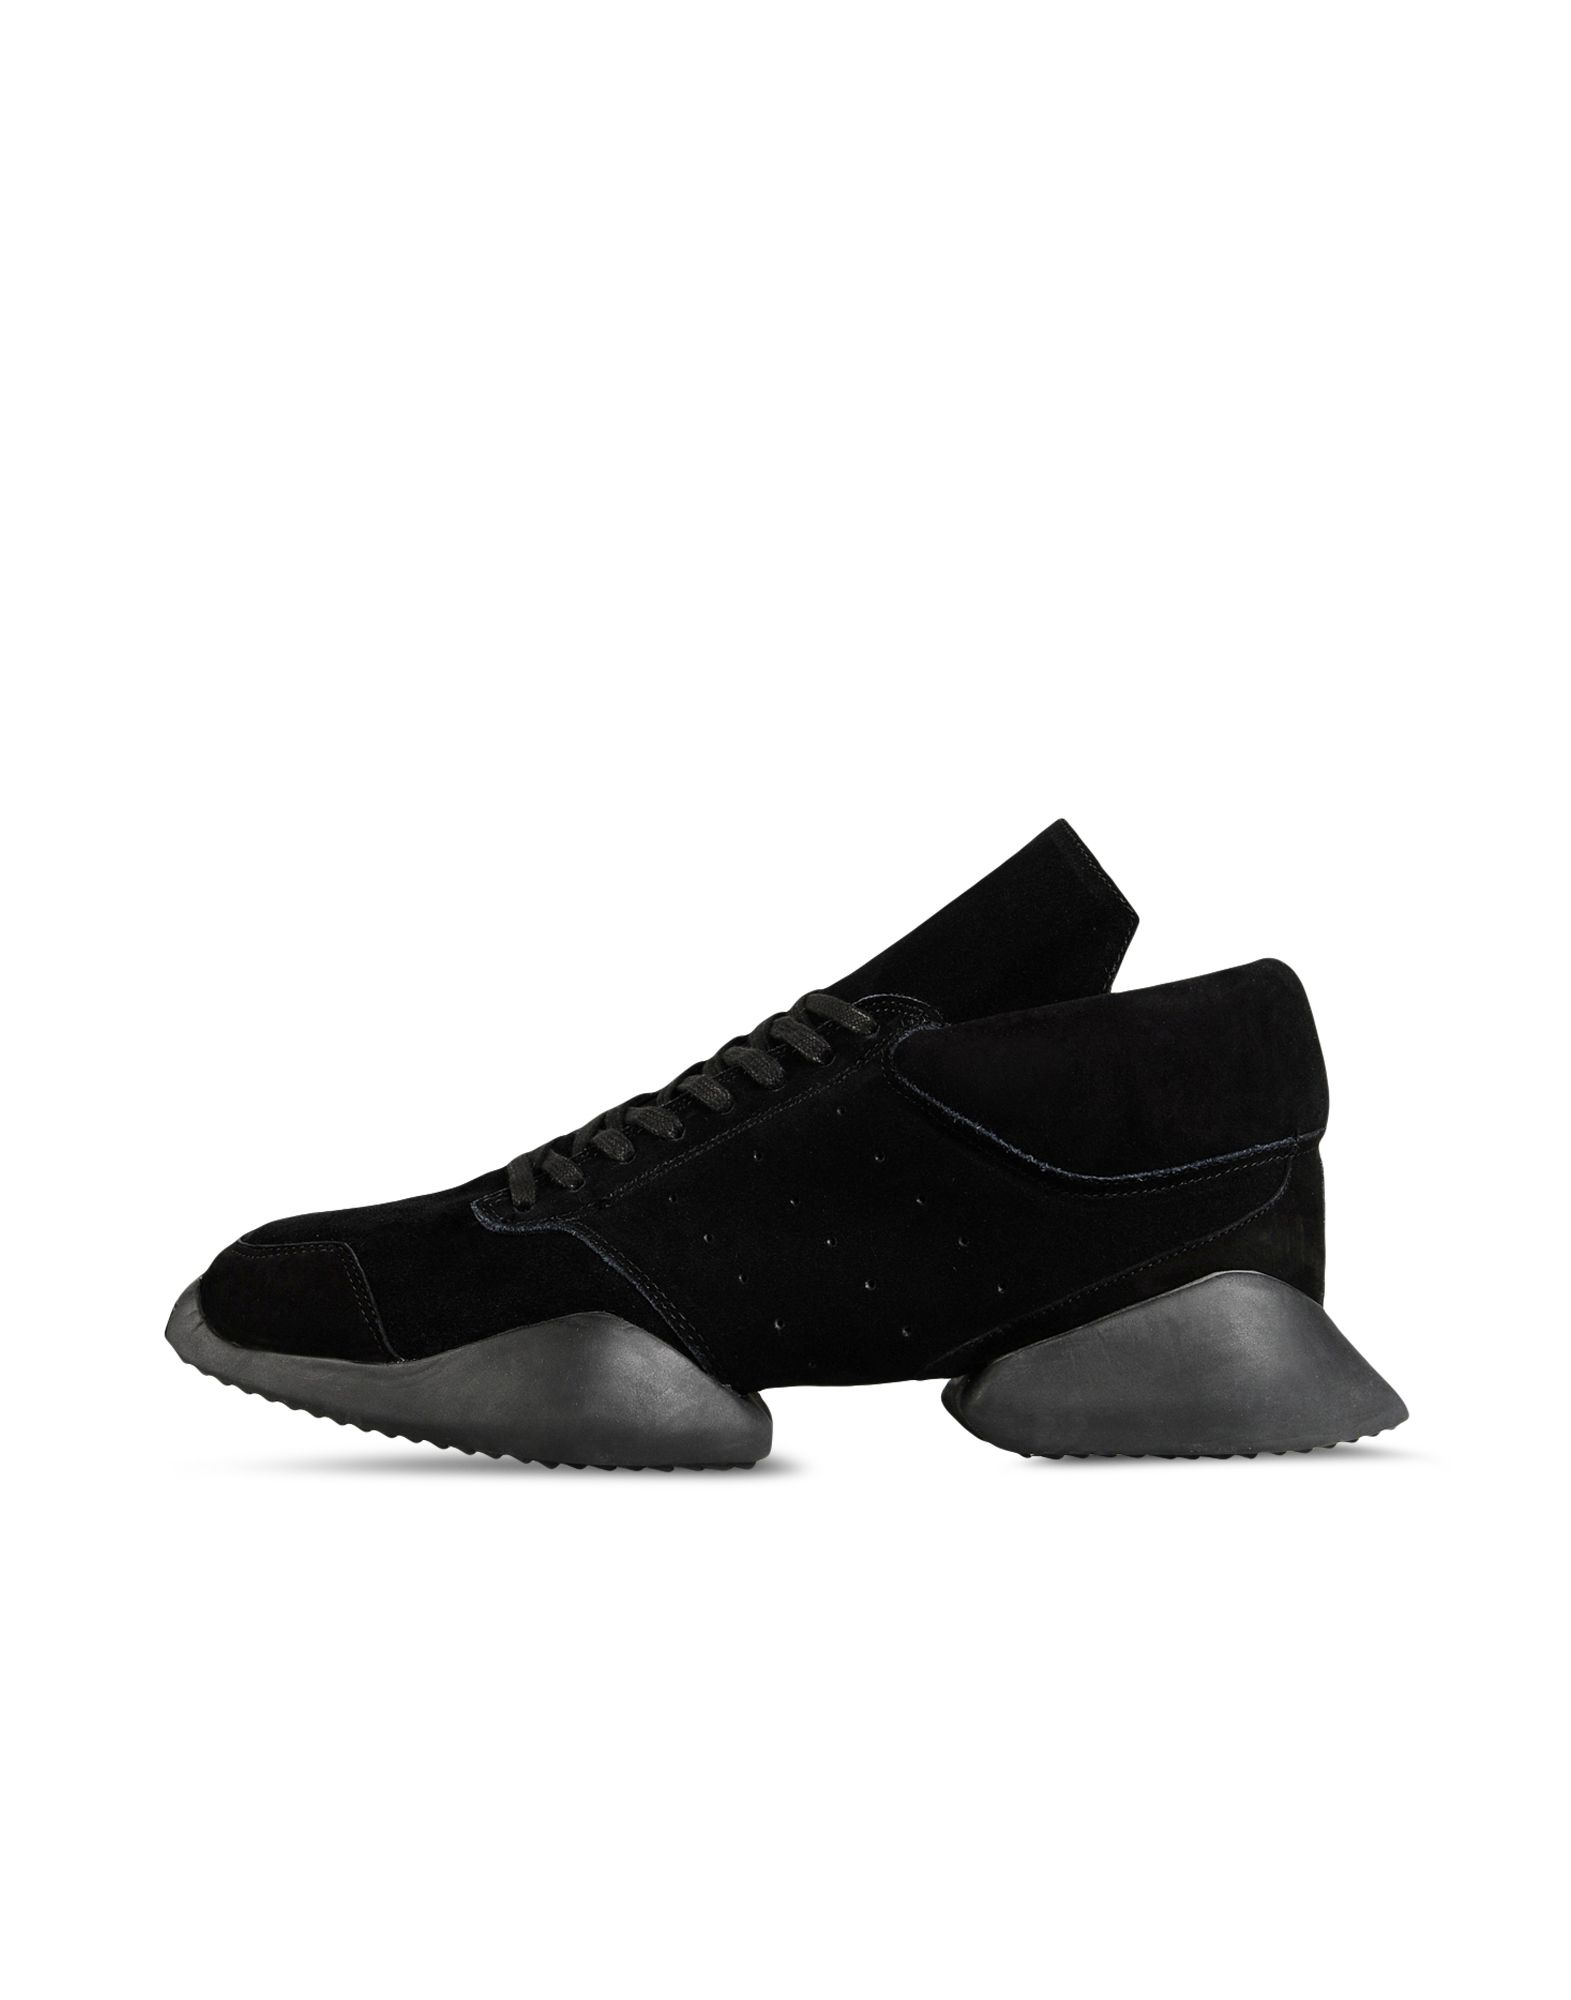 sneakers adidas x rick owens runner for women online official store